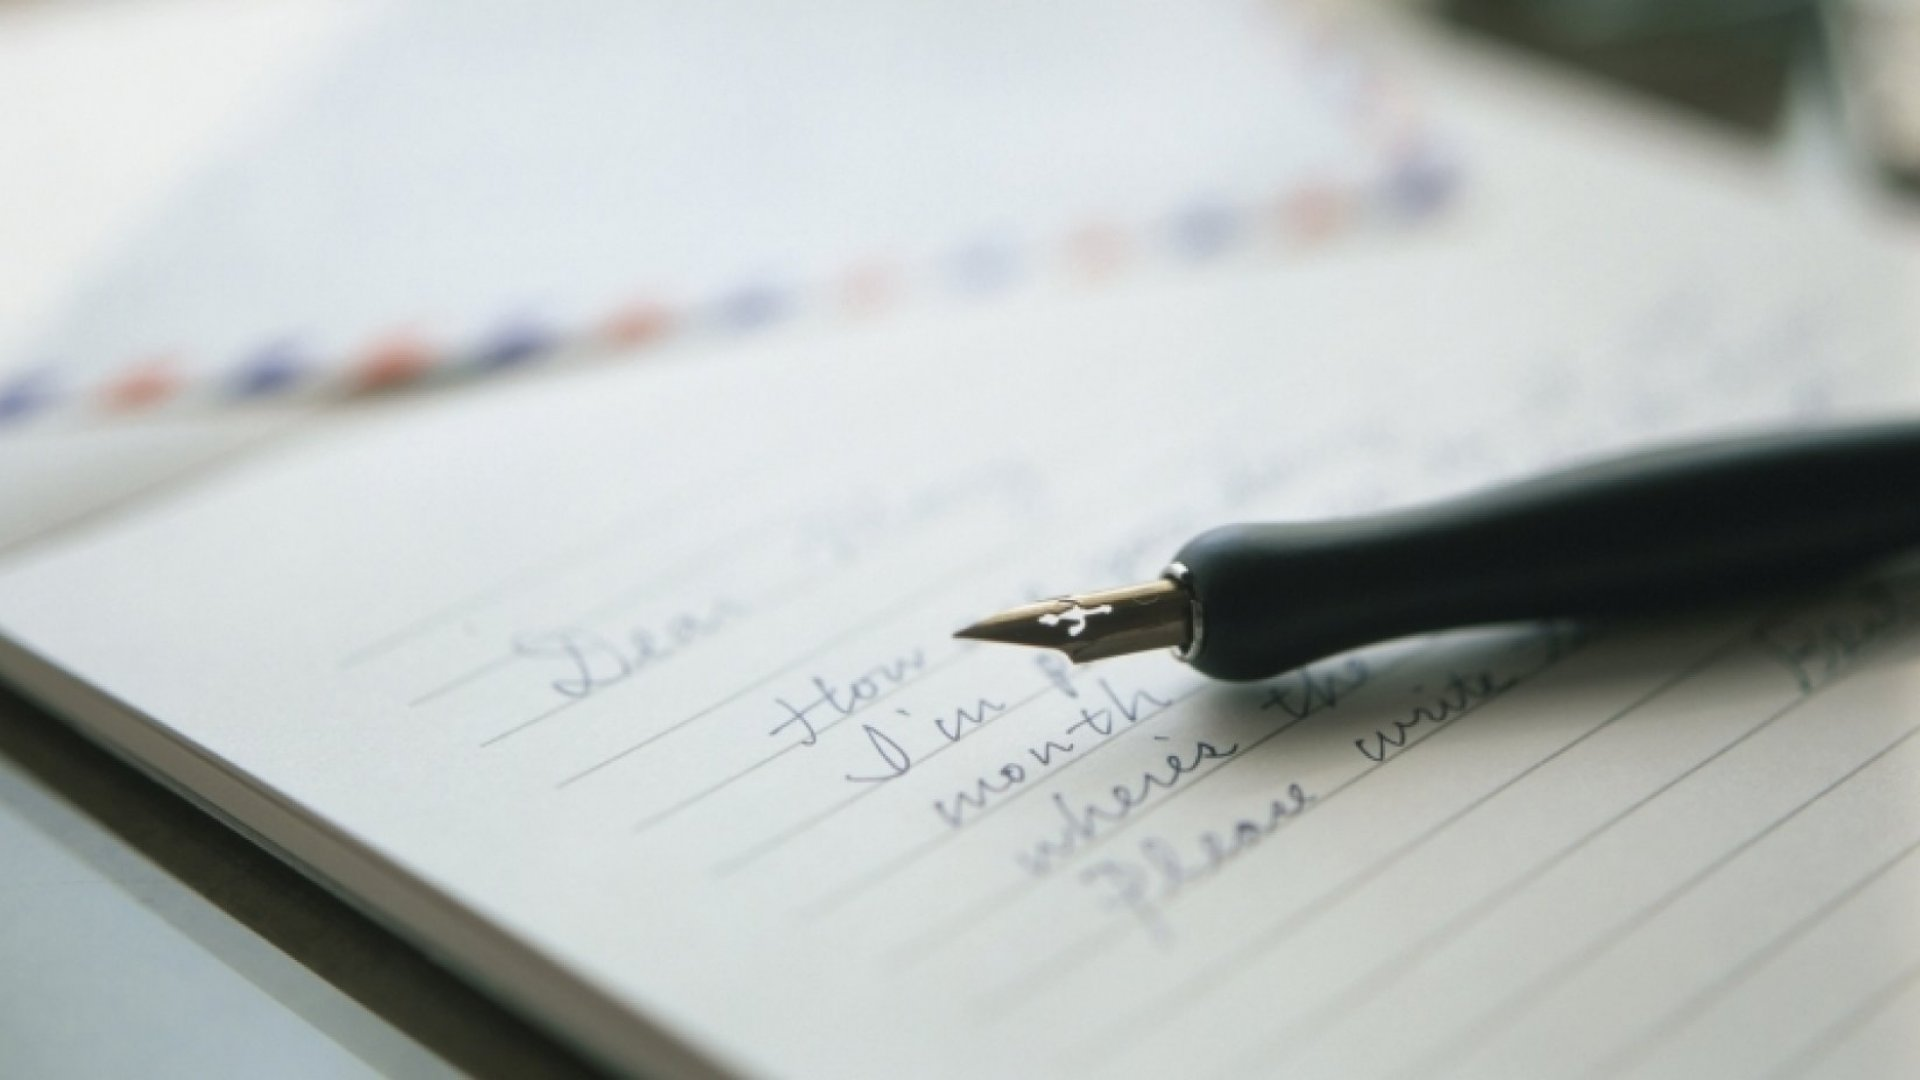 Writing an Investor Update? 11 Ideas for What to Include